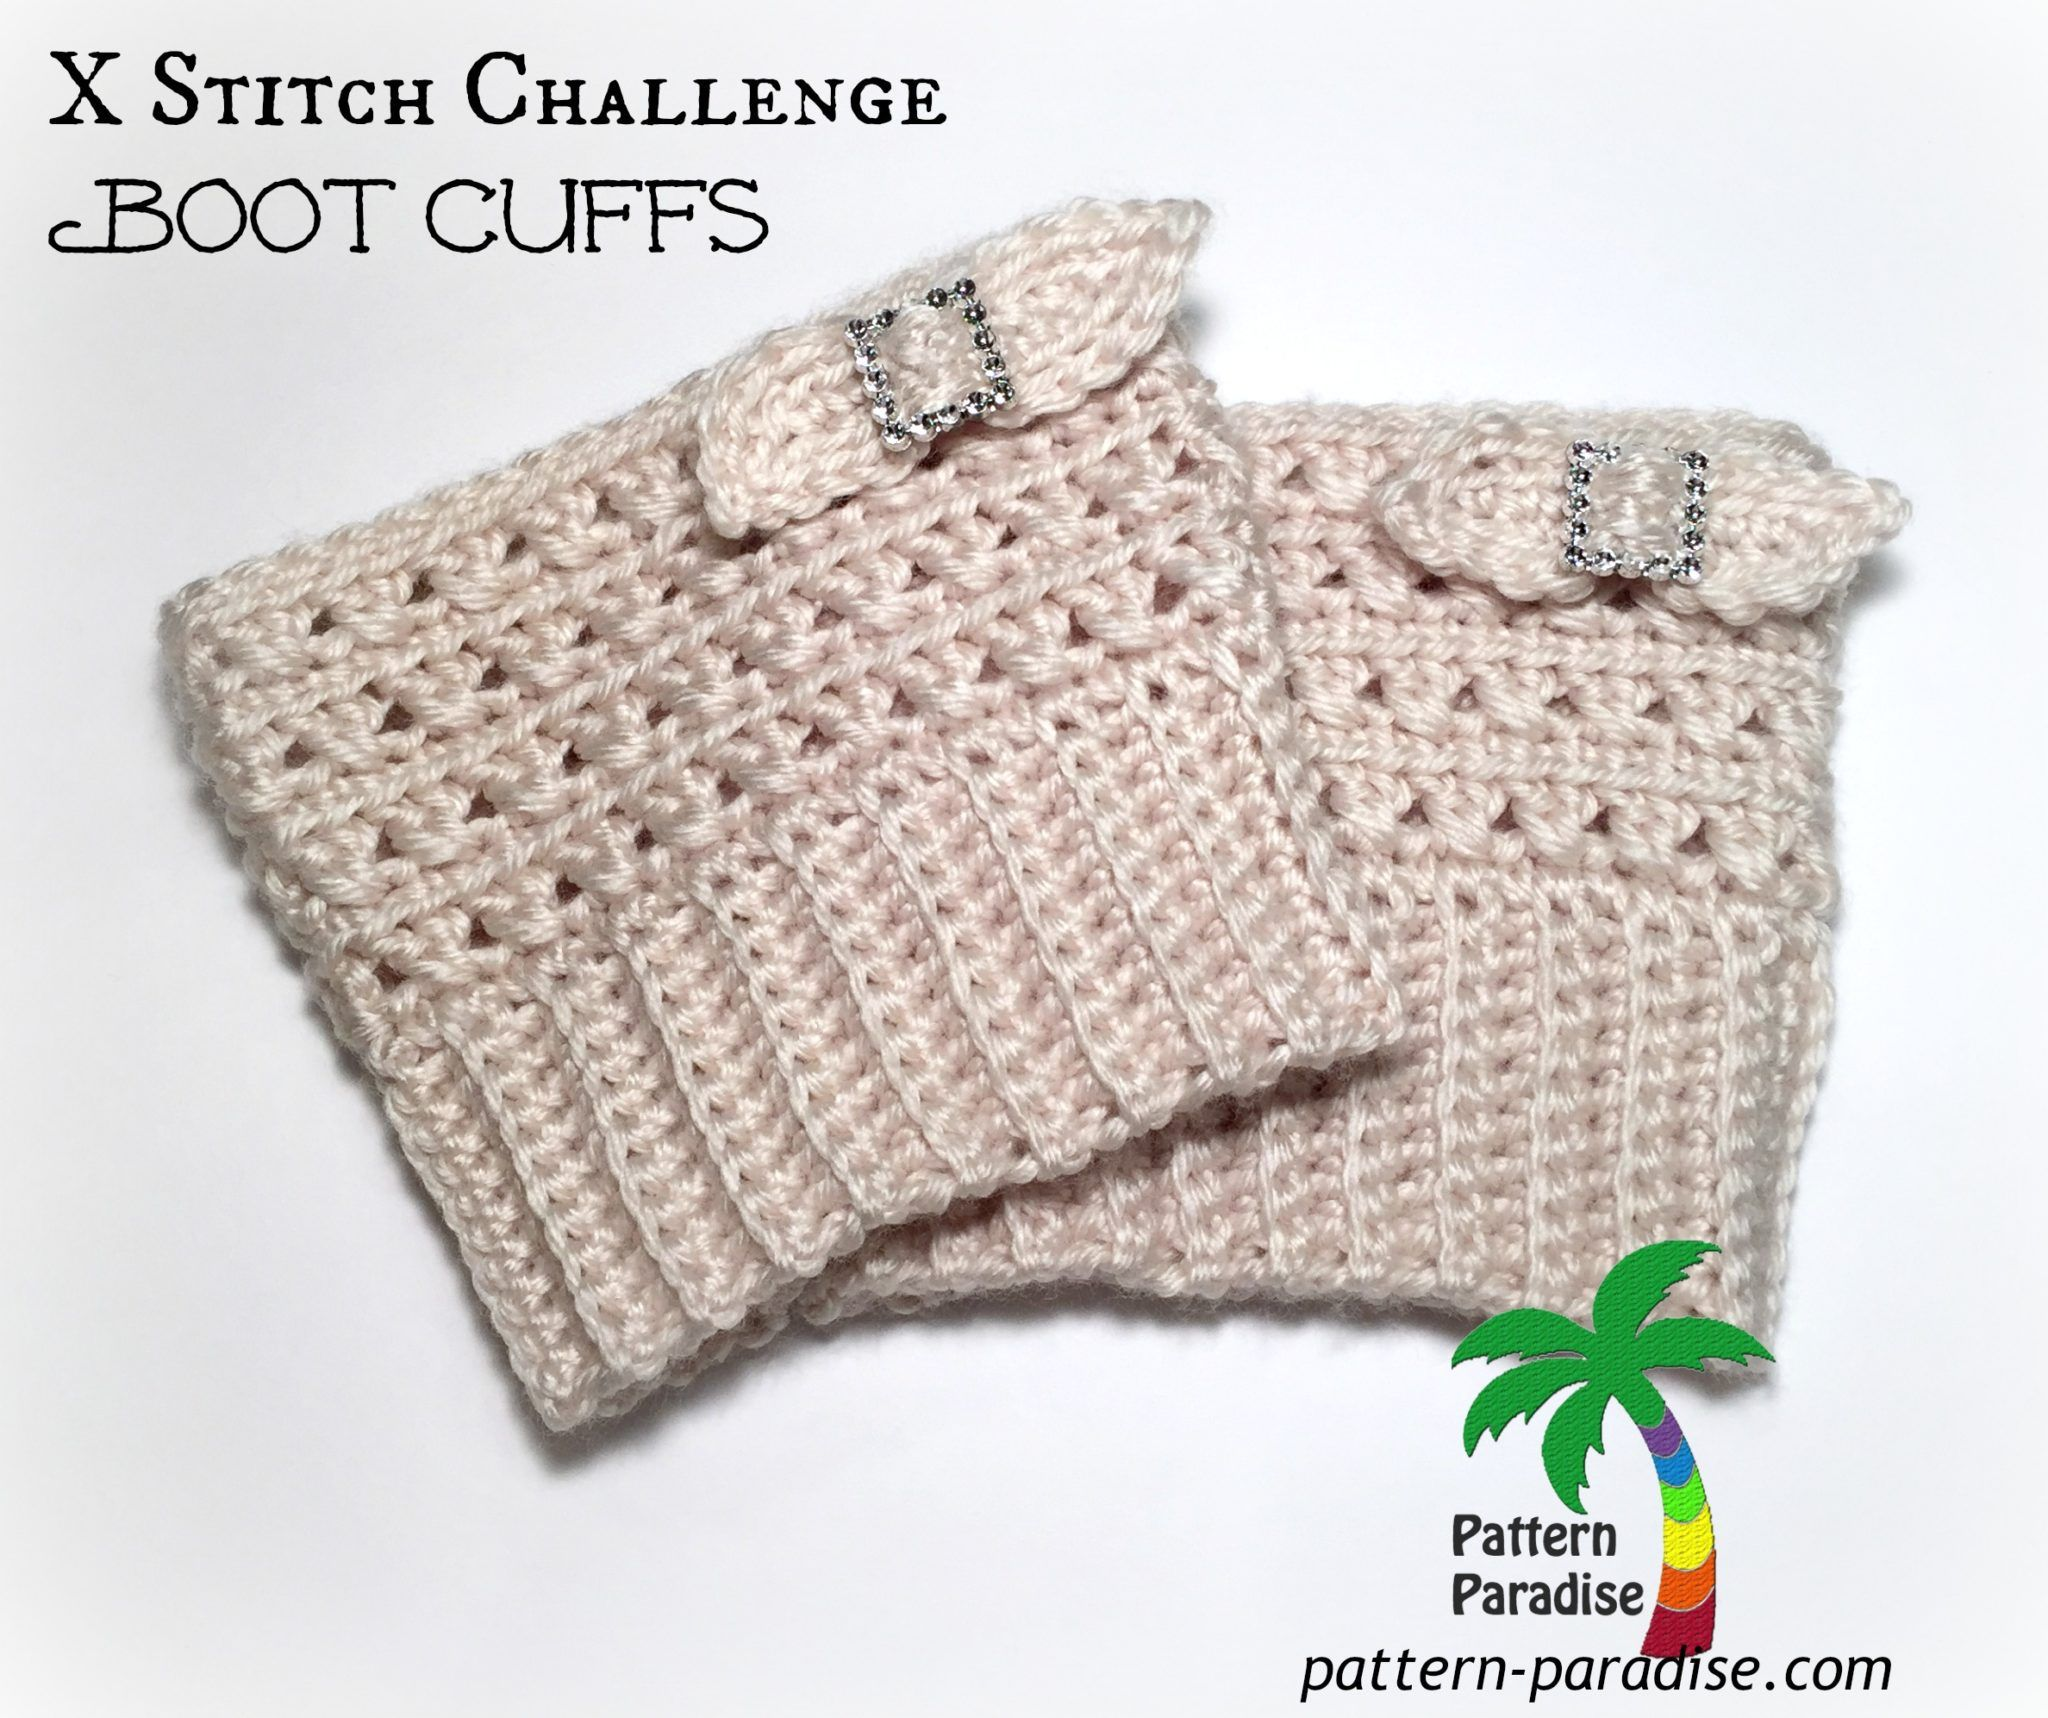 XSt-Boot-Cuffs-title-by-pattern-paradise.com_.jpg 2.048×1.718 ...